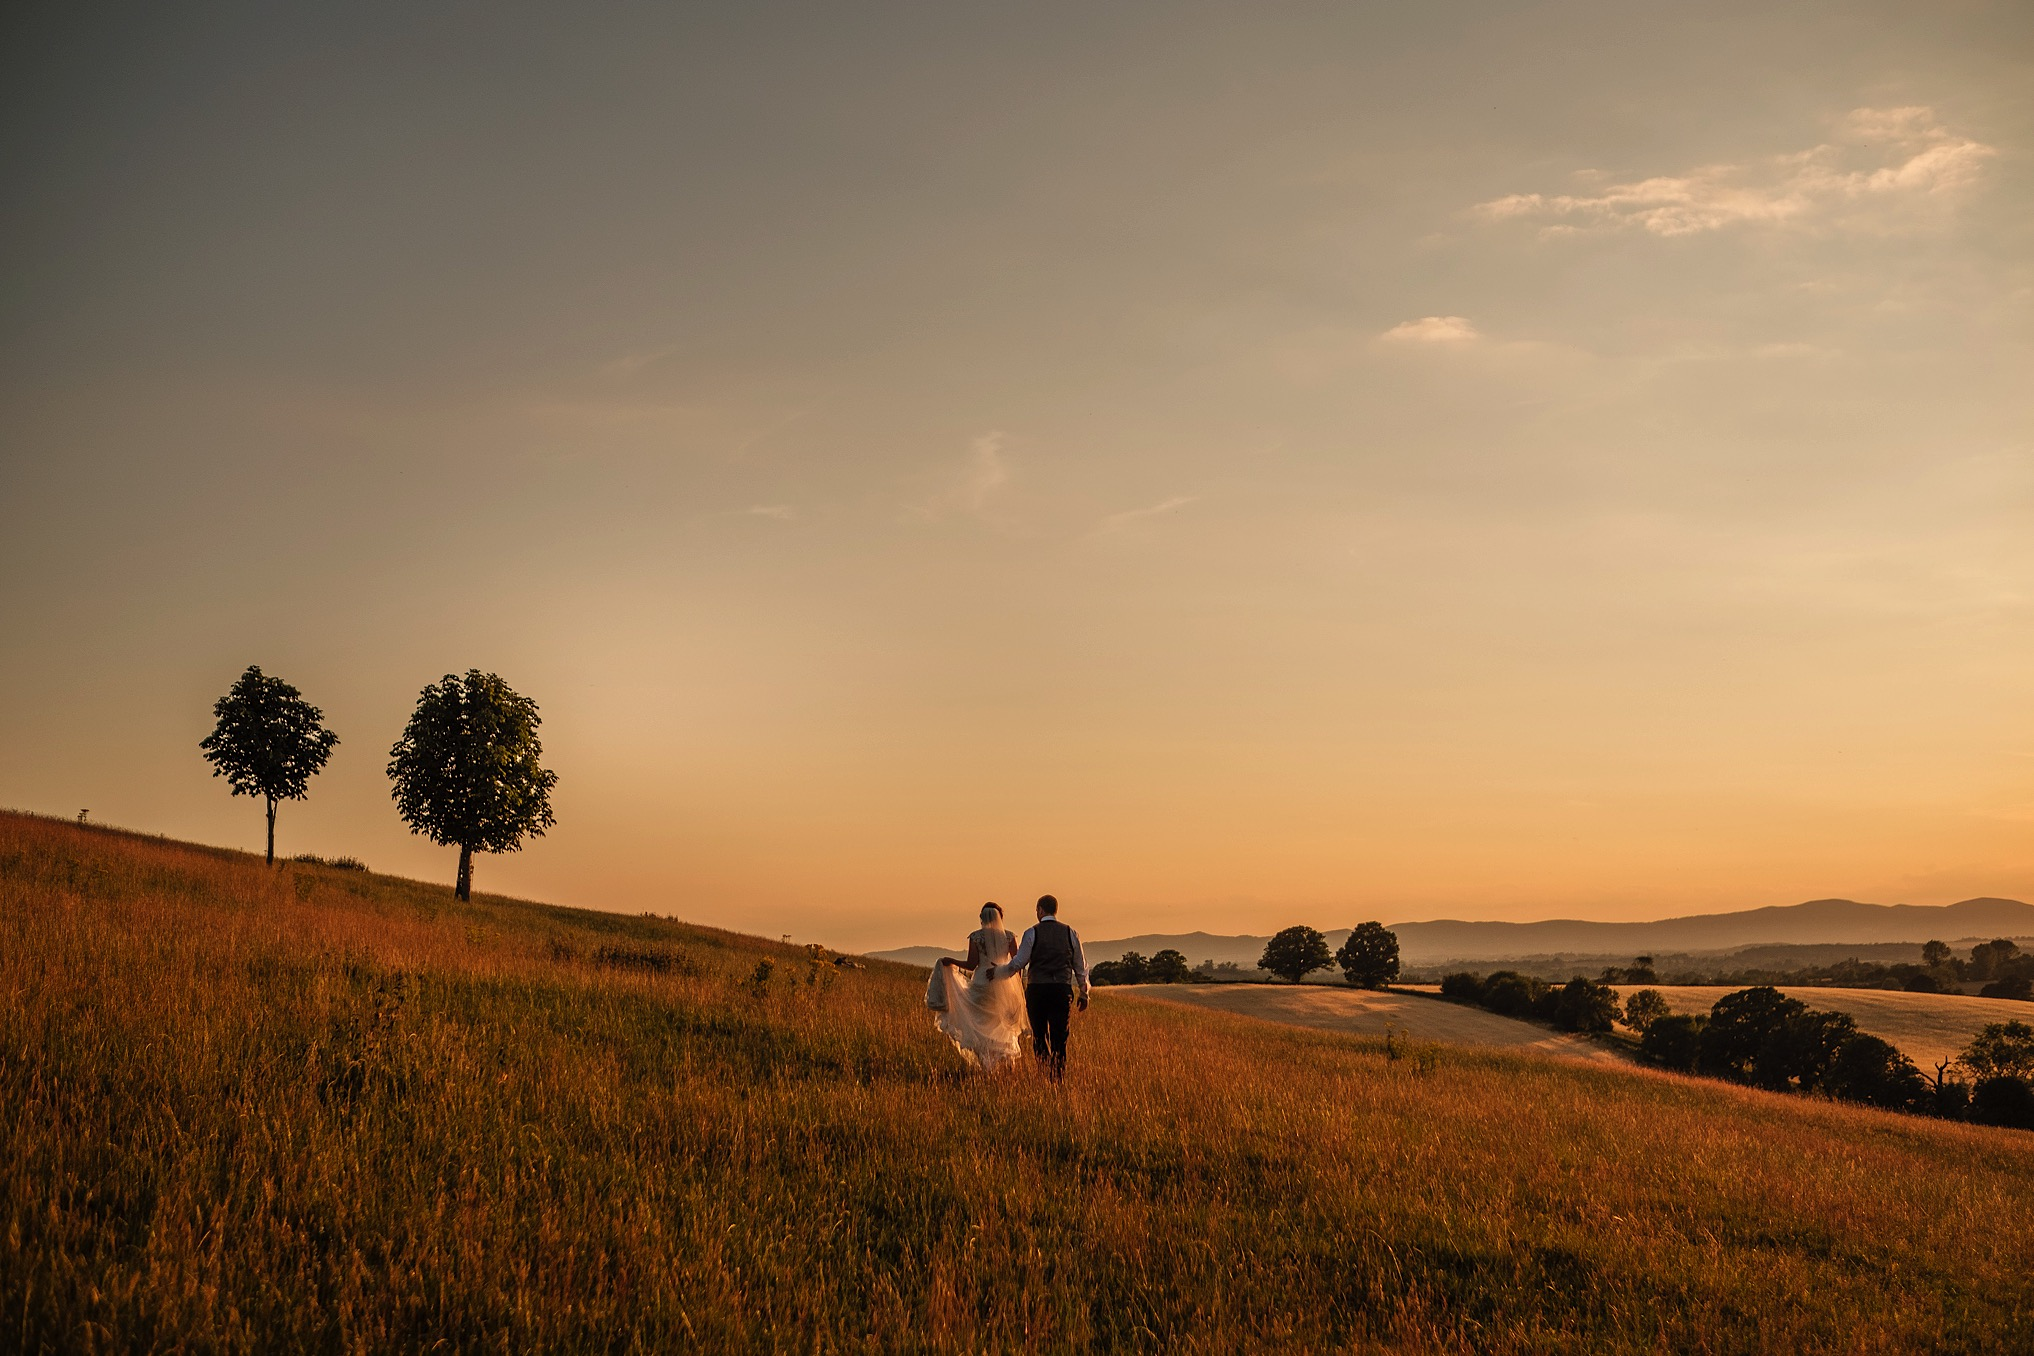 Bride and Groom Walking Through Deer Park in the Sunset